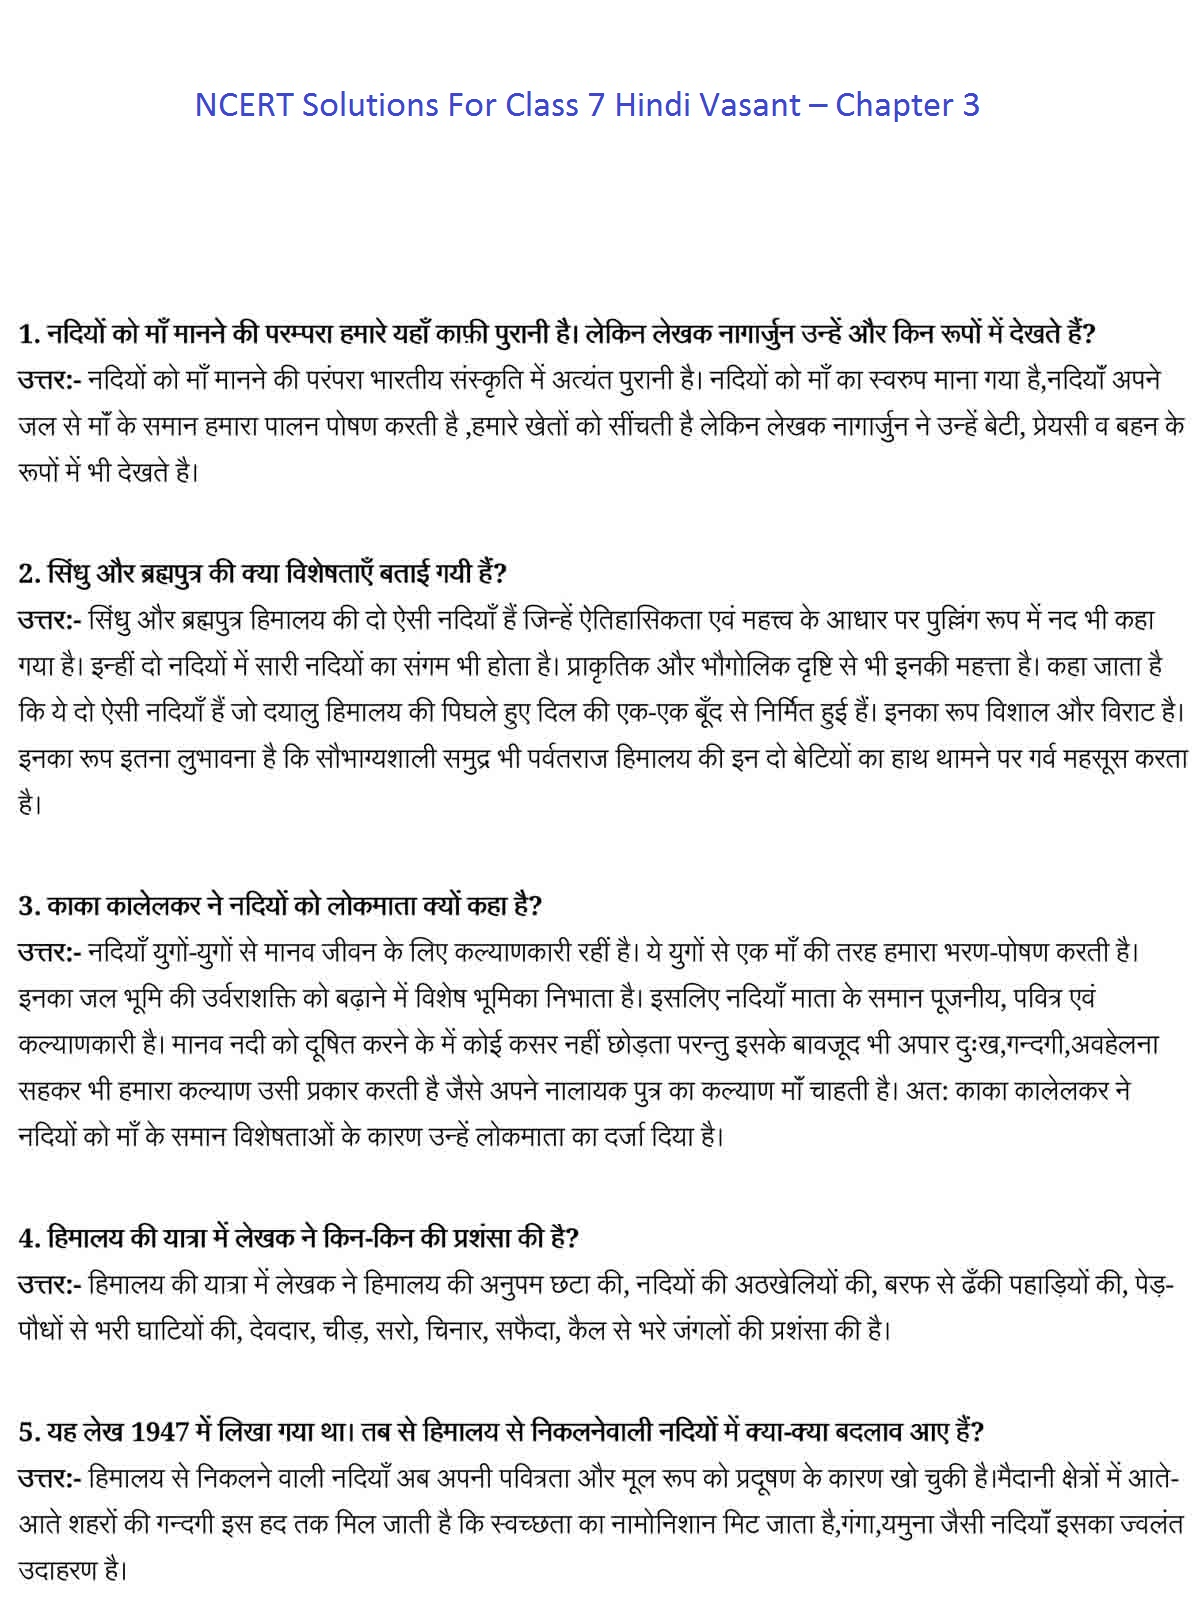 NCERT Solutions For Class 7 Hindi Vasant - Chapter 3